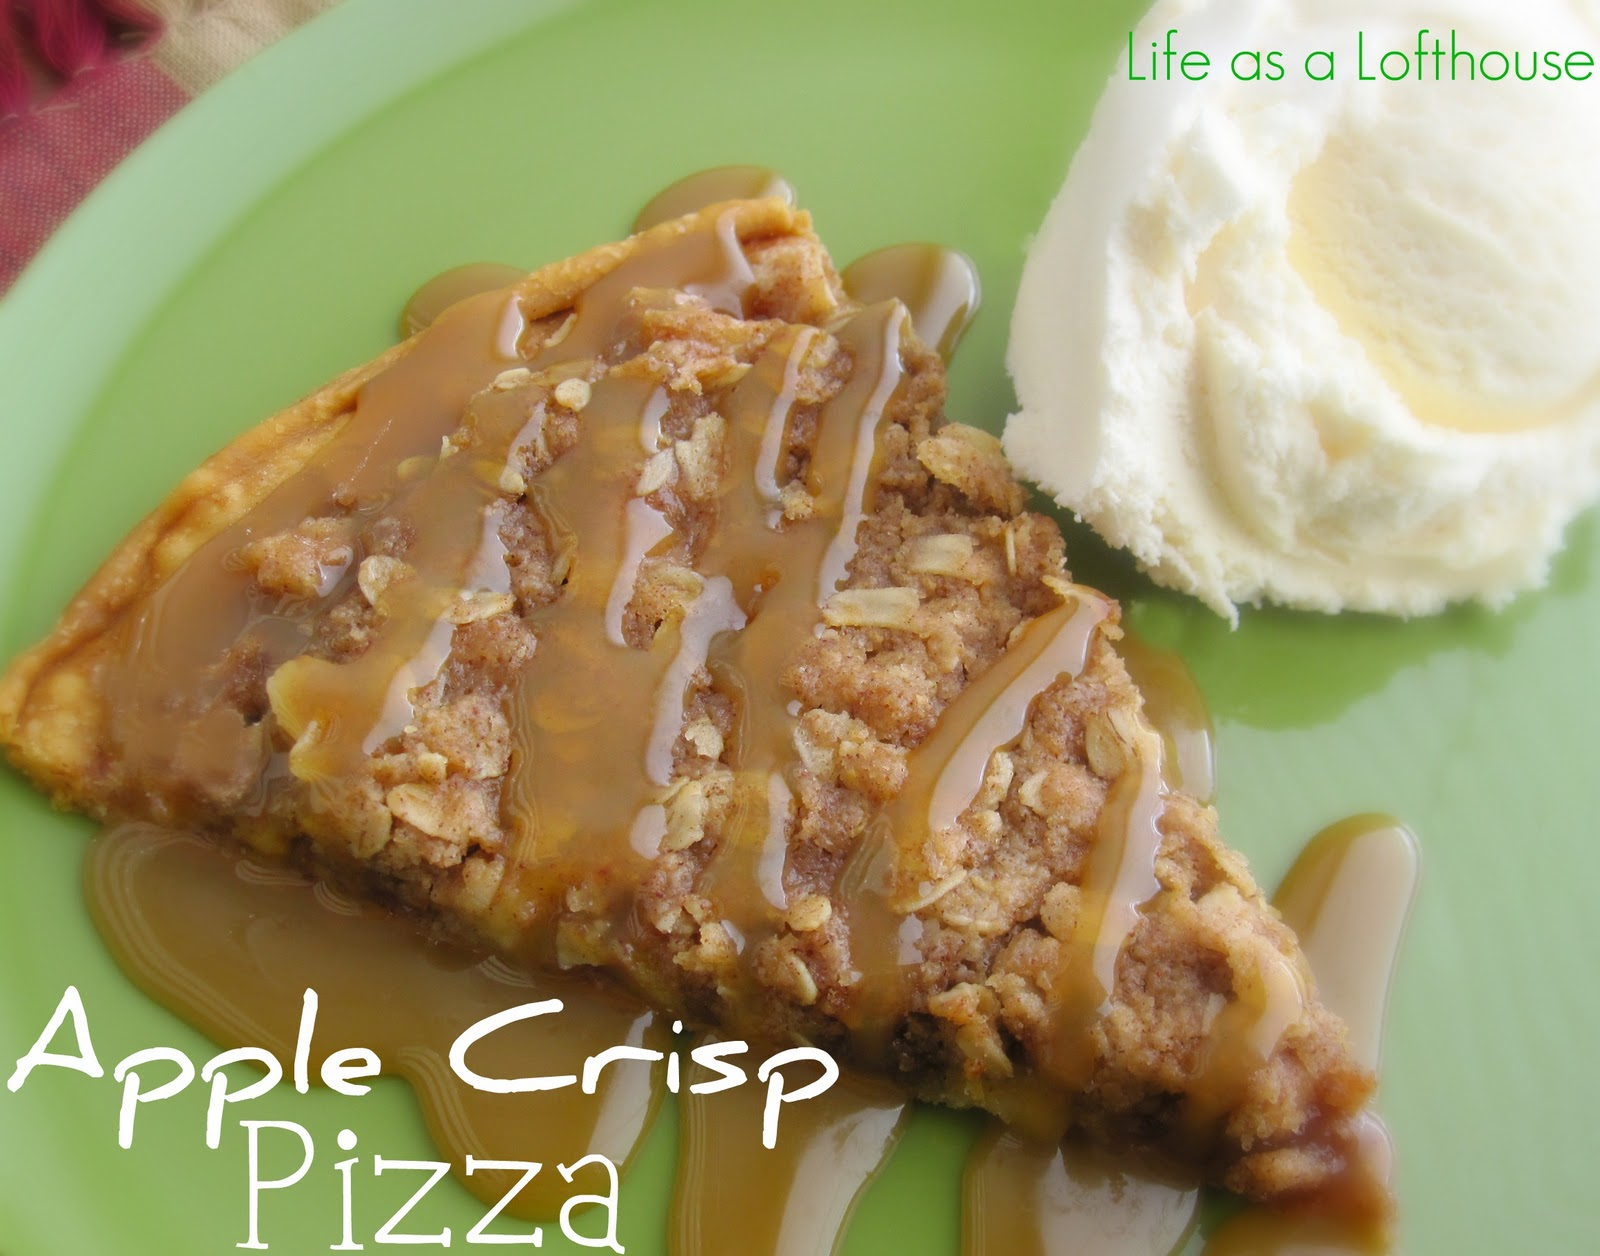 Apple Crisp Pizza - Life In The Lofthouse